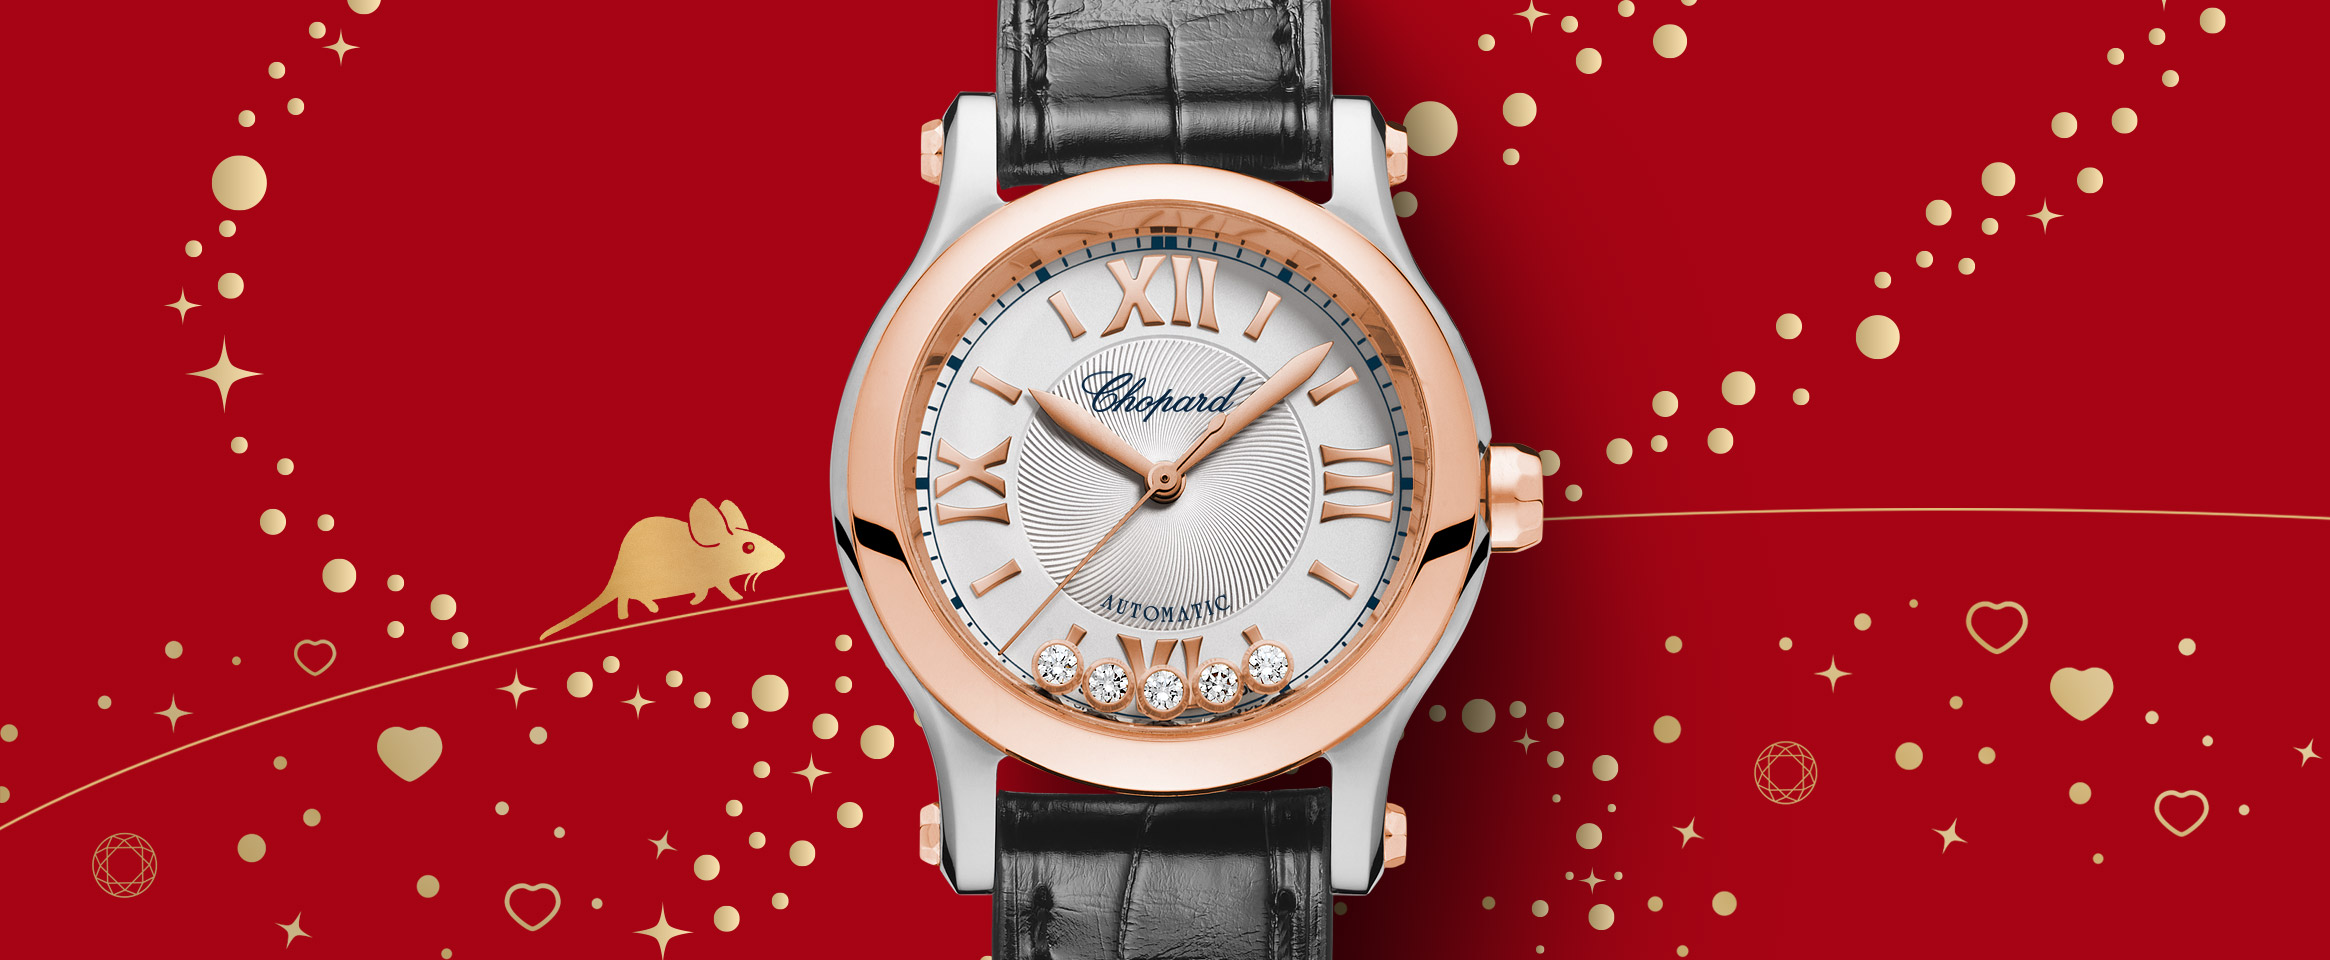 The rose gold L.U.C XP Urushi Year of the Rat timepiece over a red background with golden hearts and a tiny golden rat.